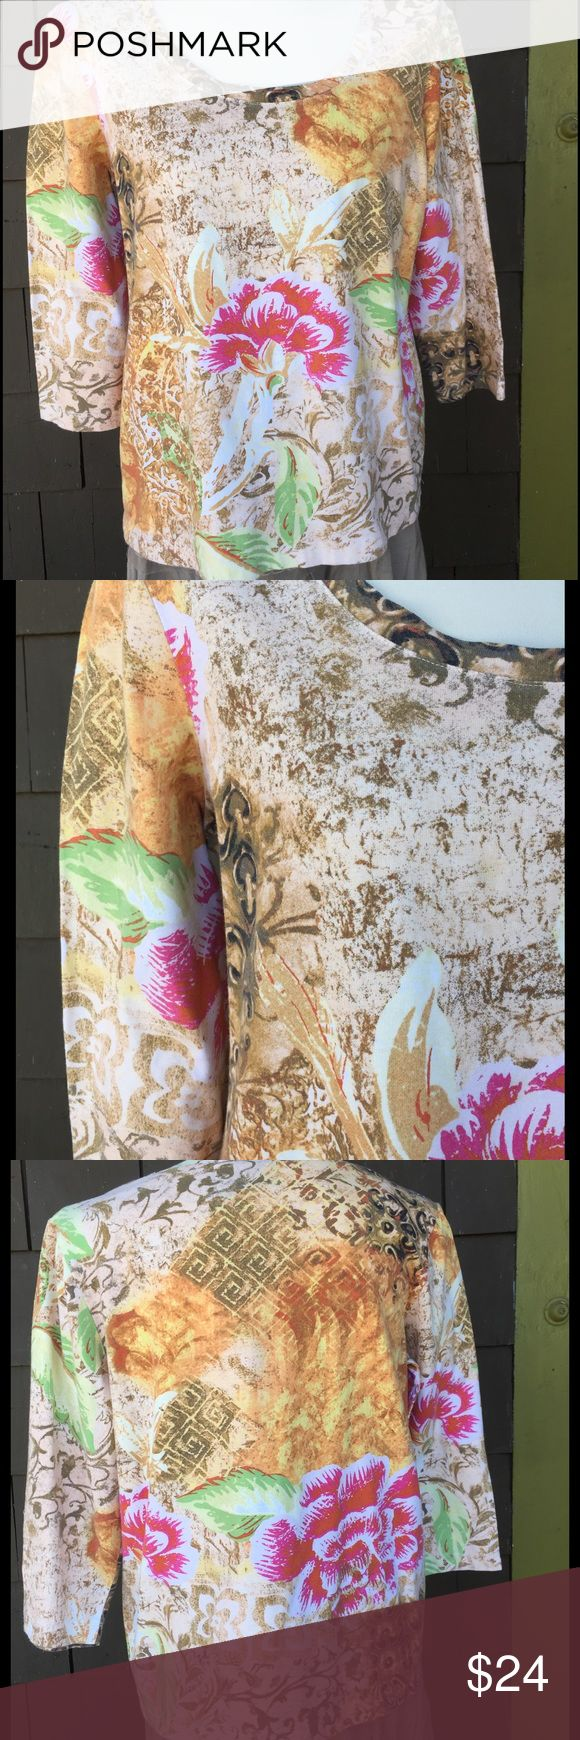 """Chicos floral tee Great looking 3/4 length sleeve top..  95% cotton. 5% spandex. 22 1/2"""" p2p. 24"""" long. In brand new condition. Chico's Tops"""